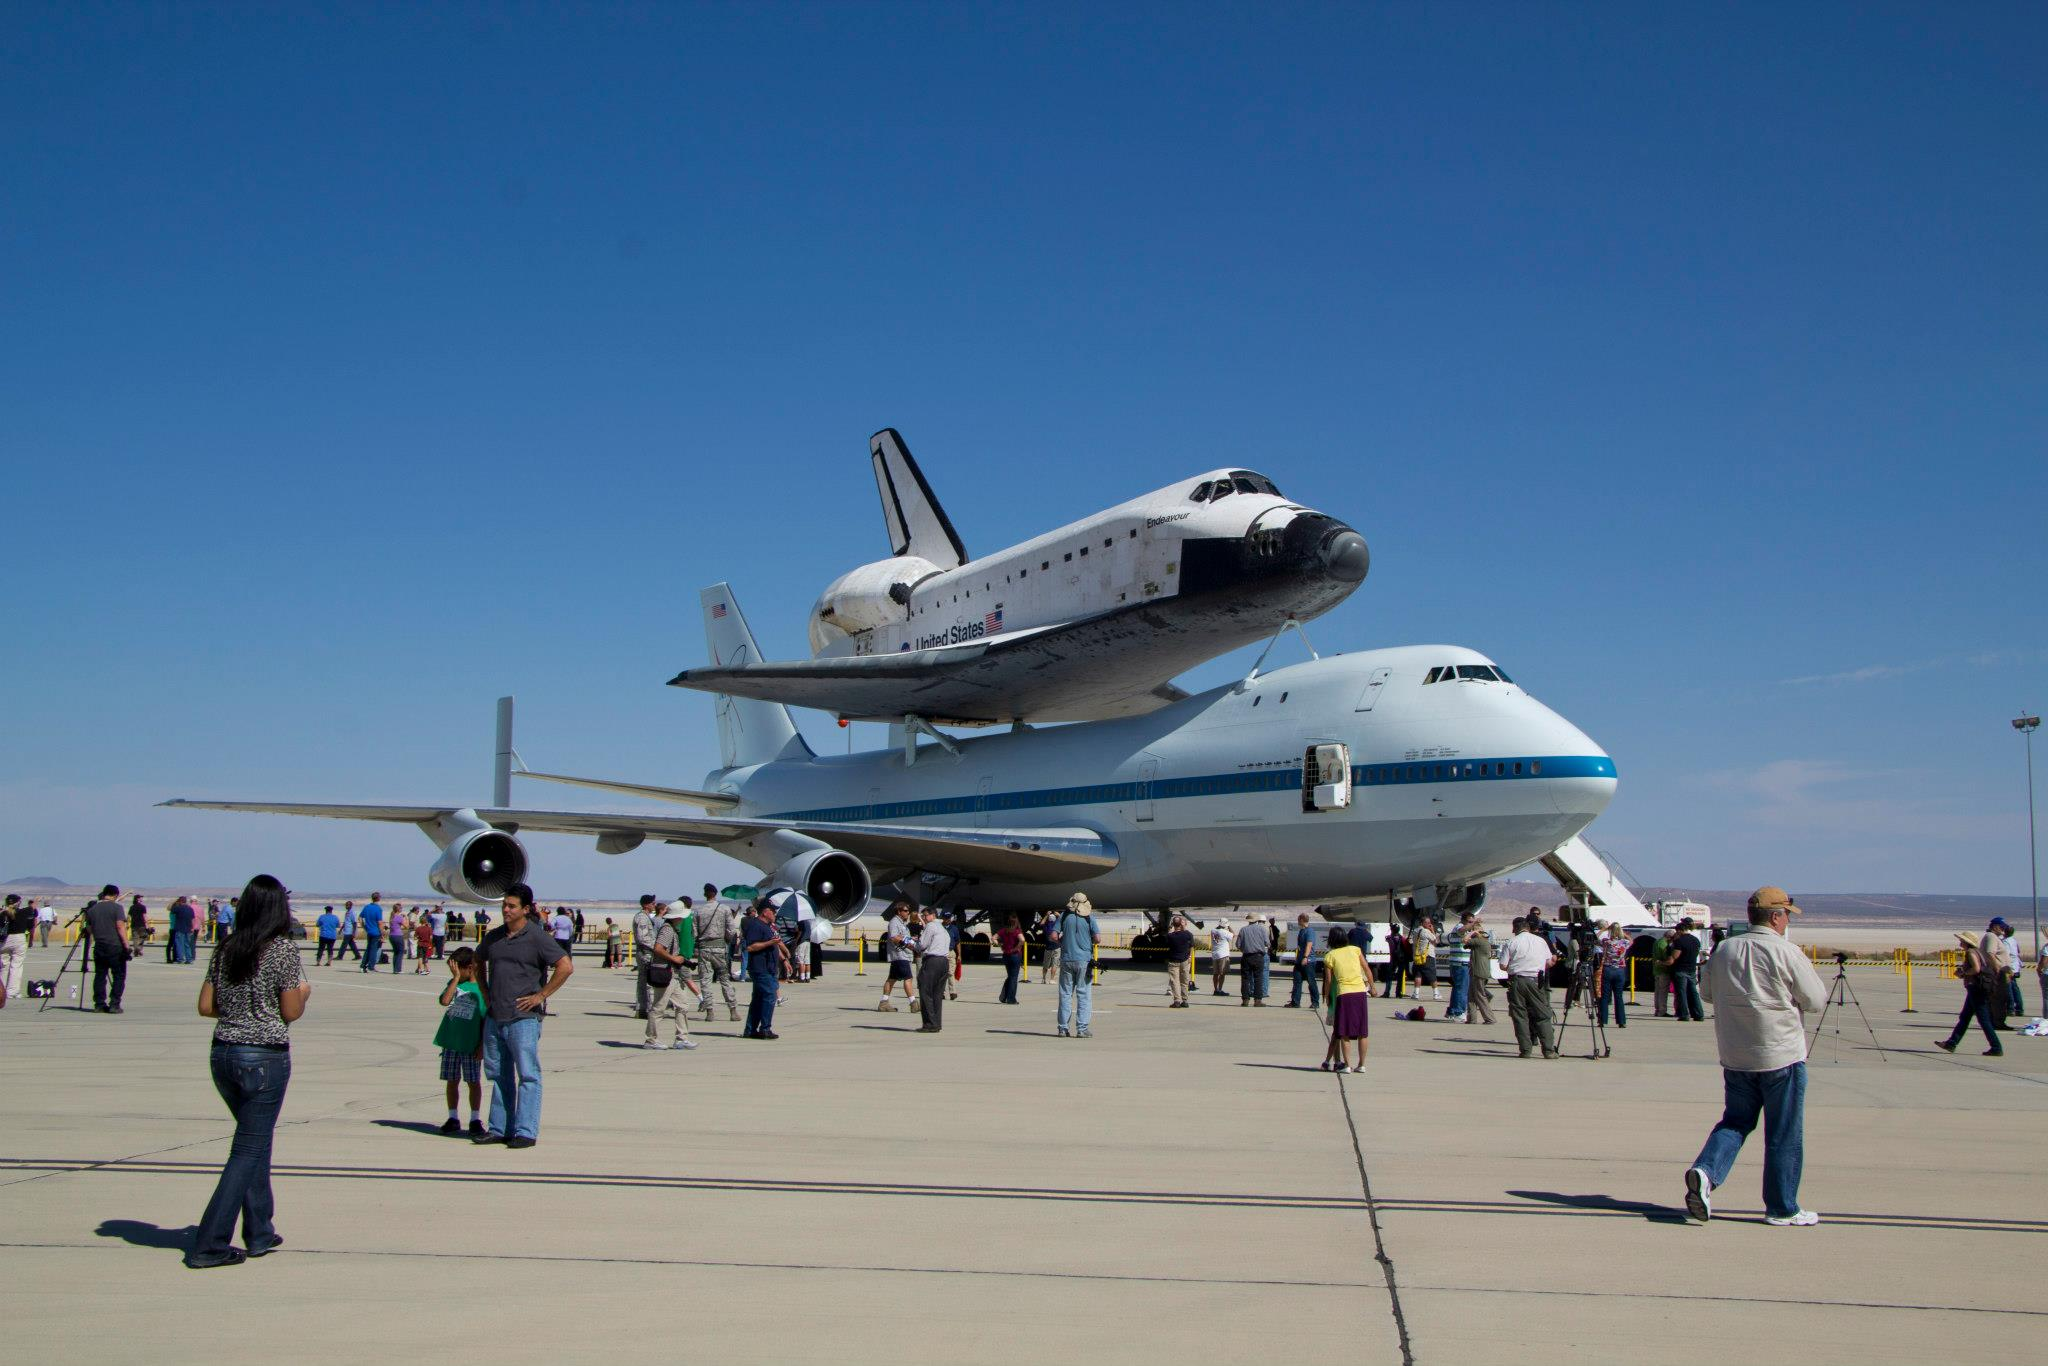 space shuttle return - photo #27